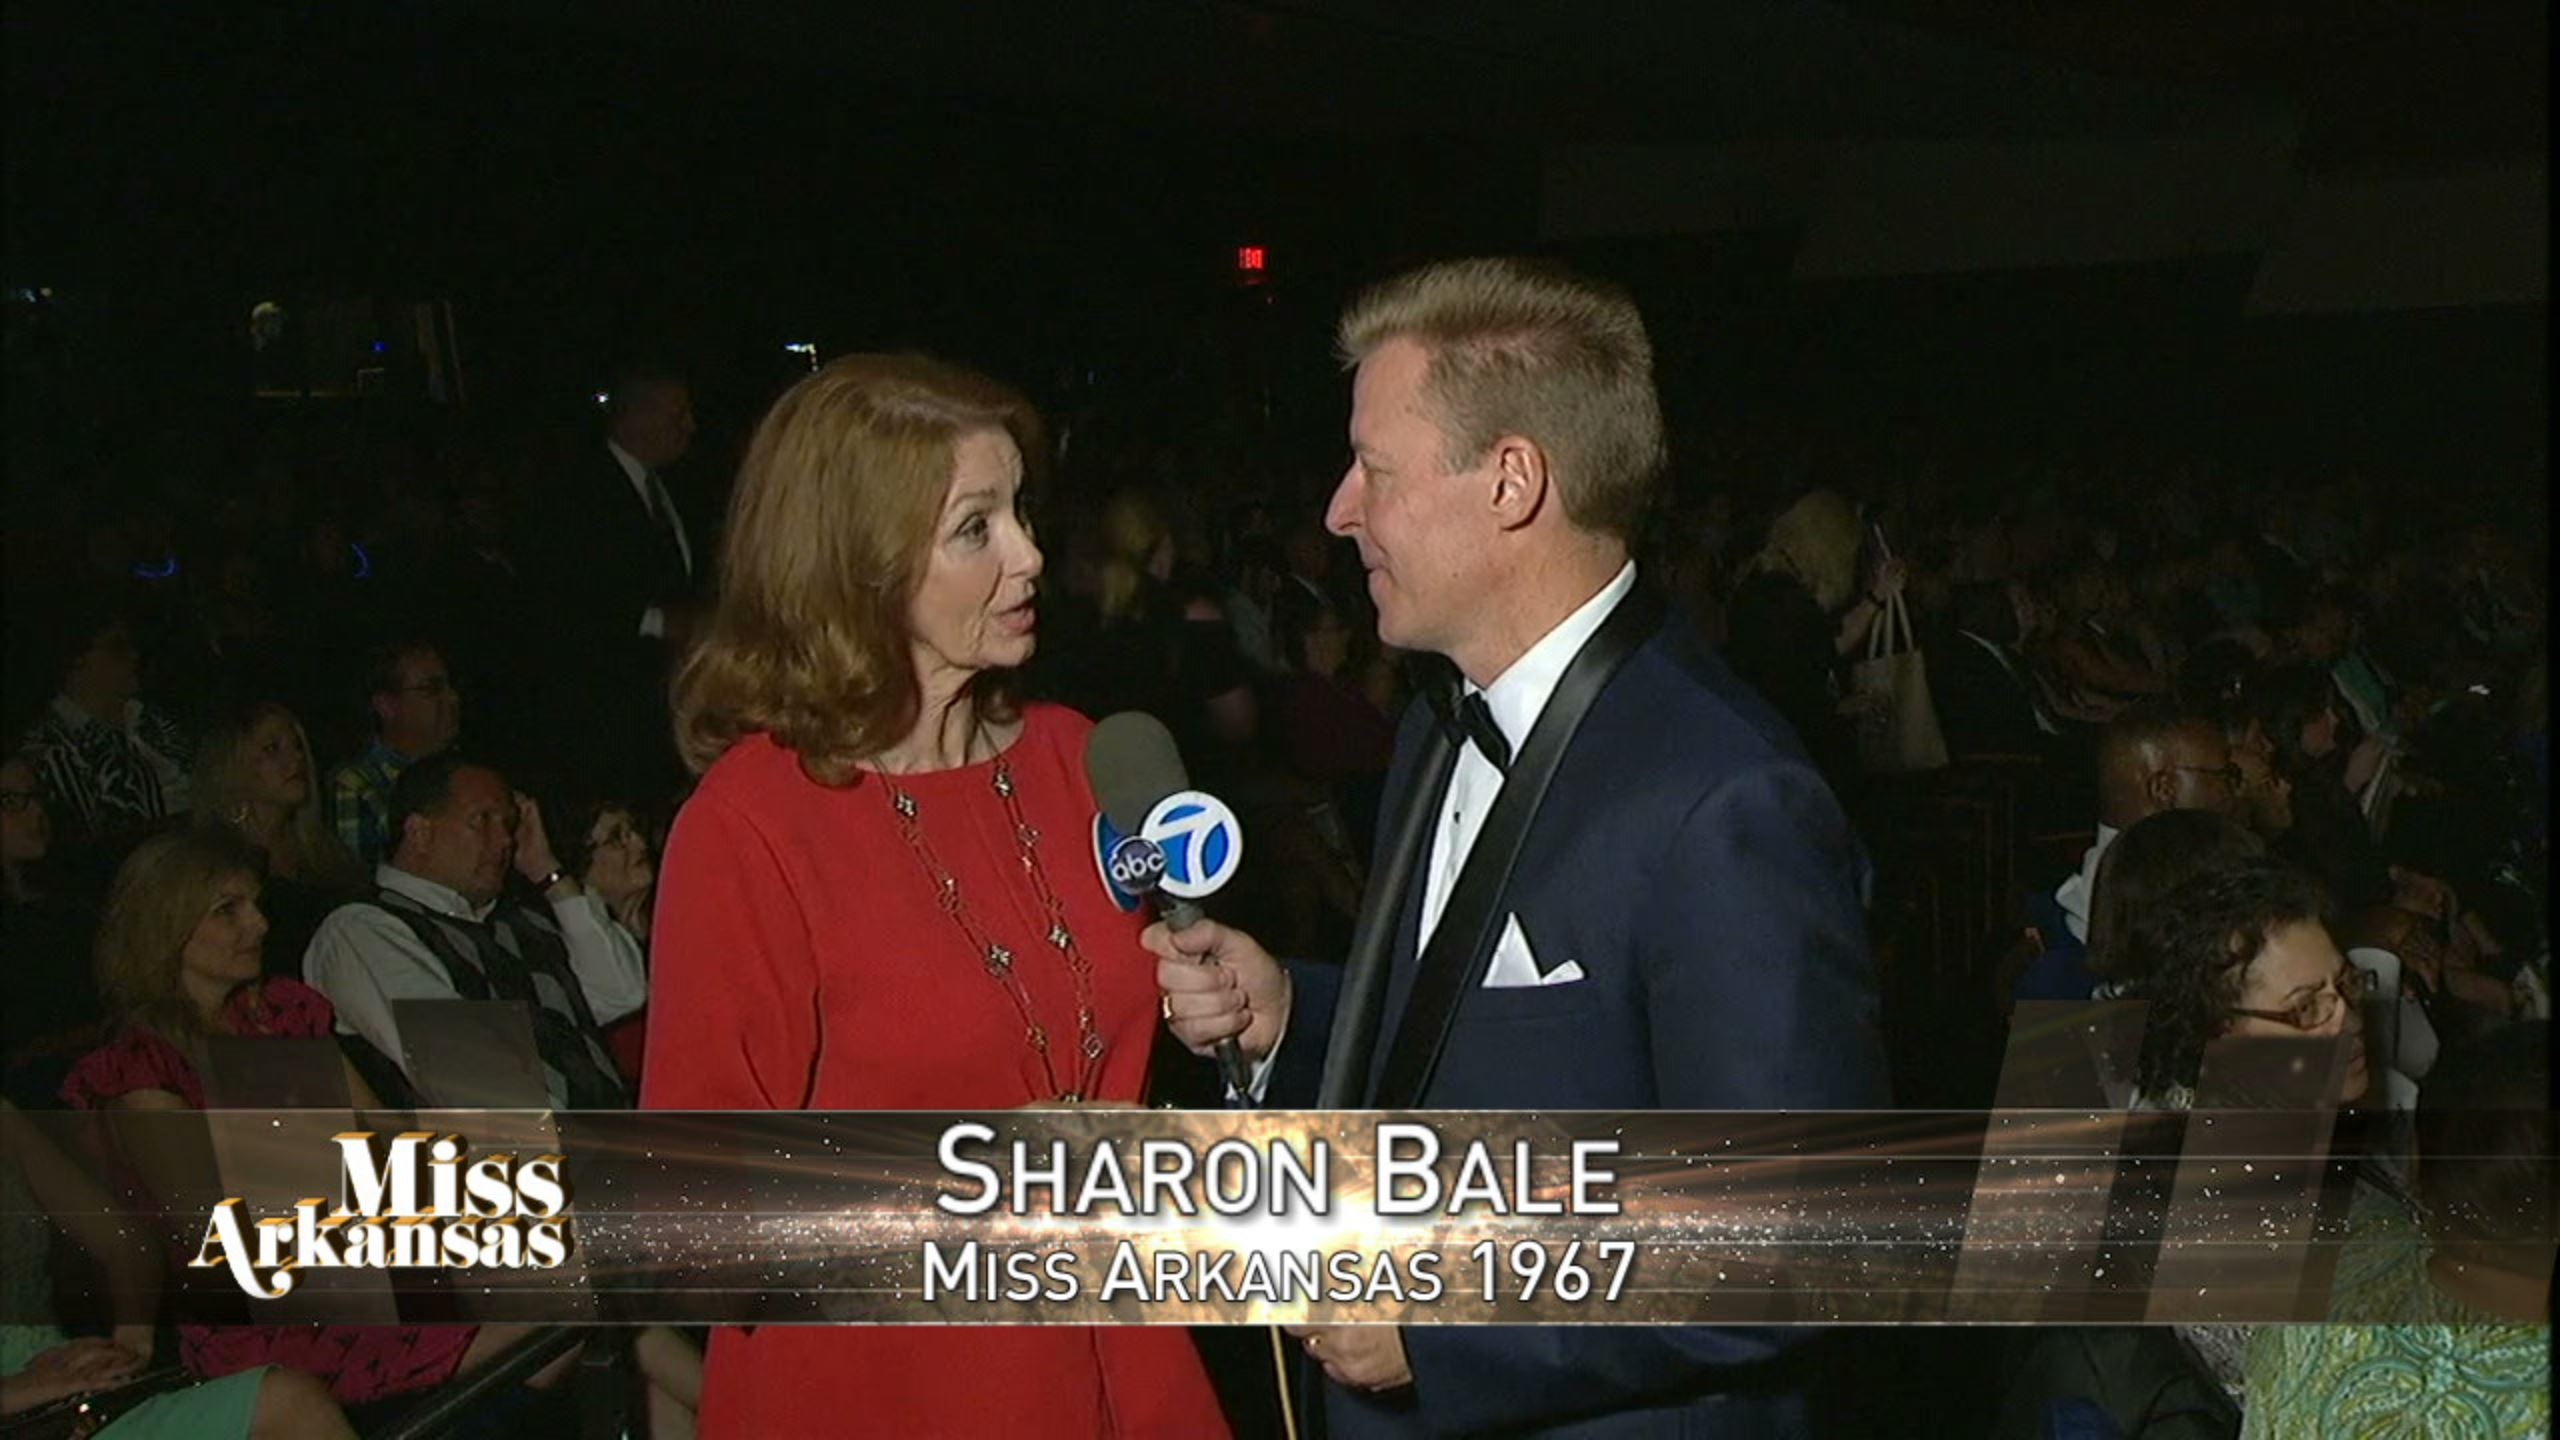 Channel 7's Jason Pederson spoke with Sharon Bale who held the Miss Arkansas title in 1967. (Photo: KATV)